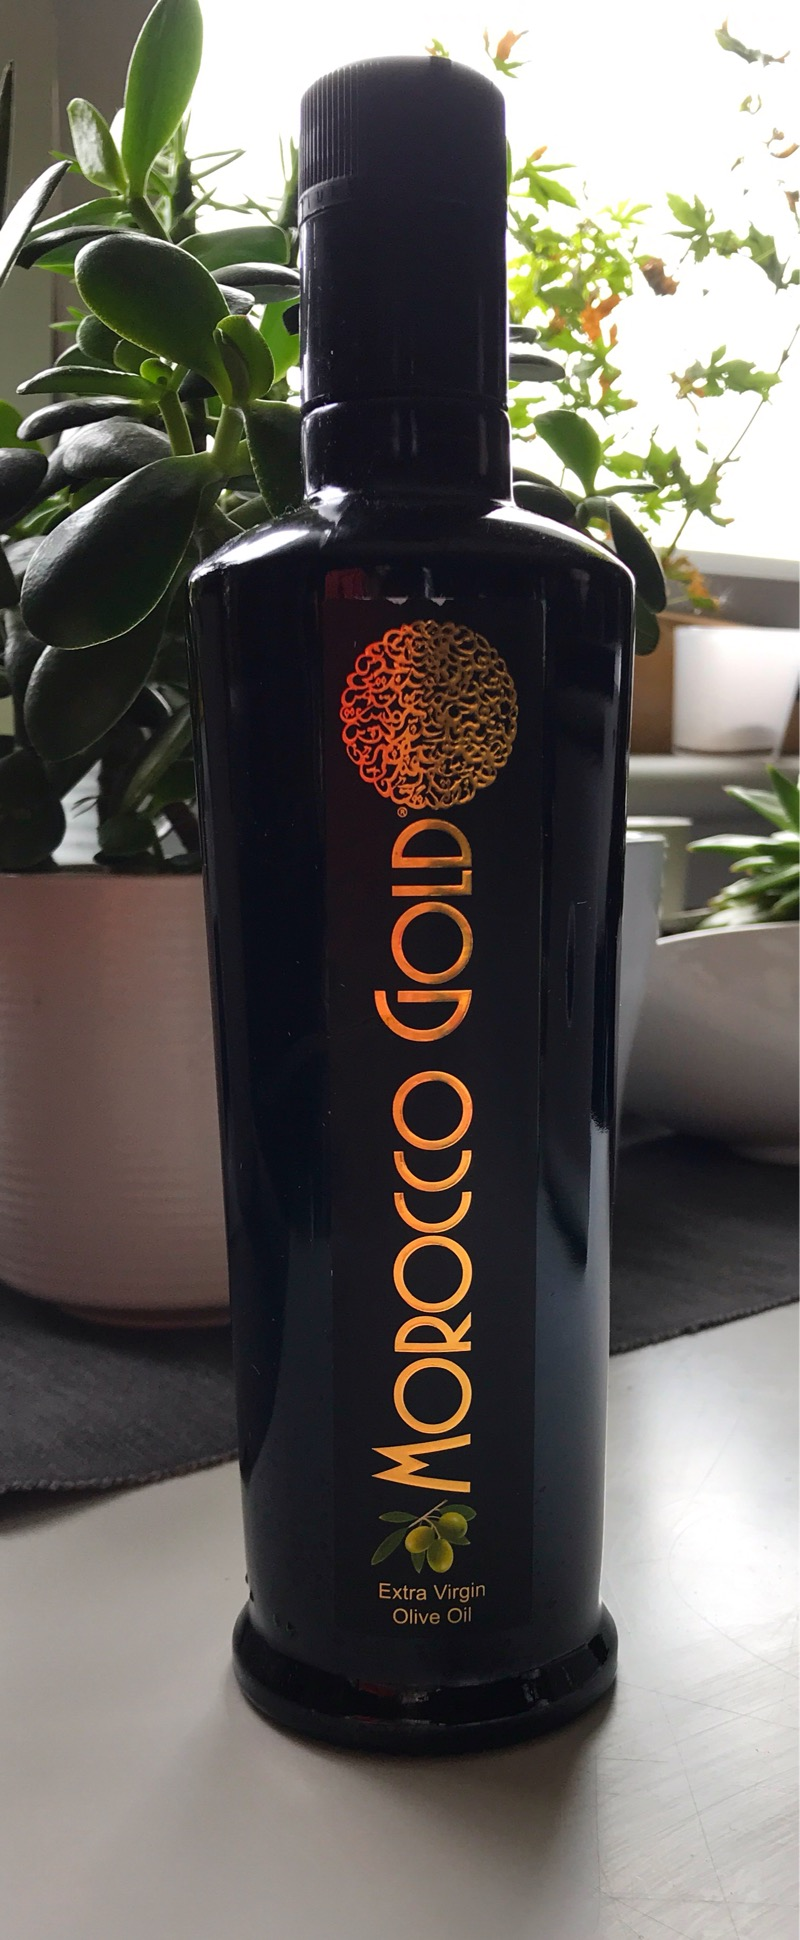 Morocco Gold Olive Oil review